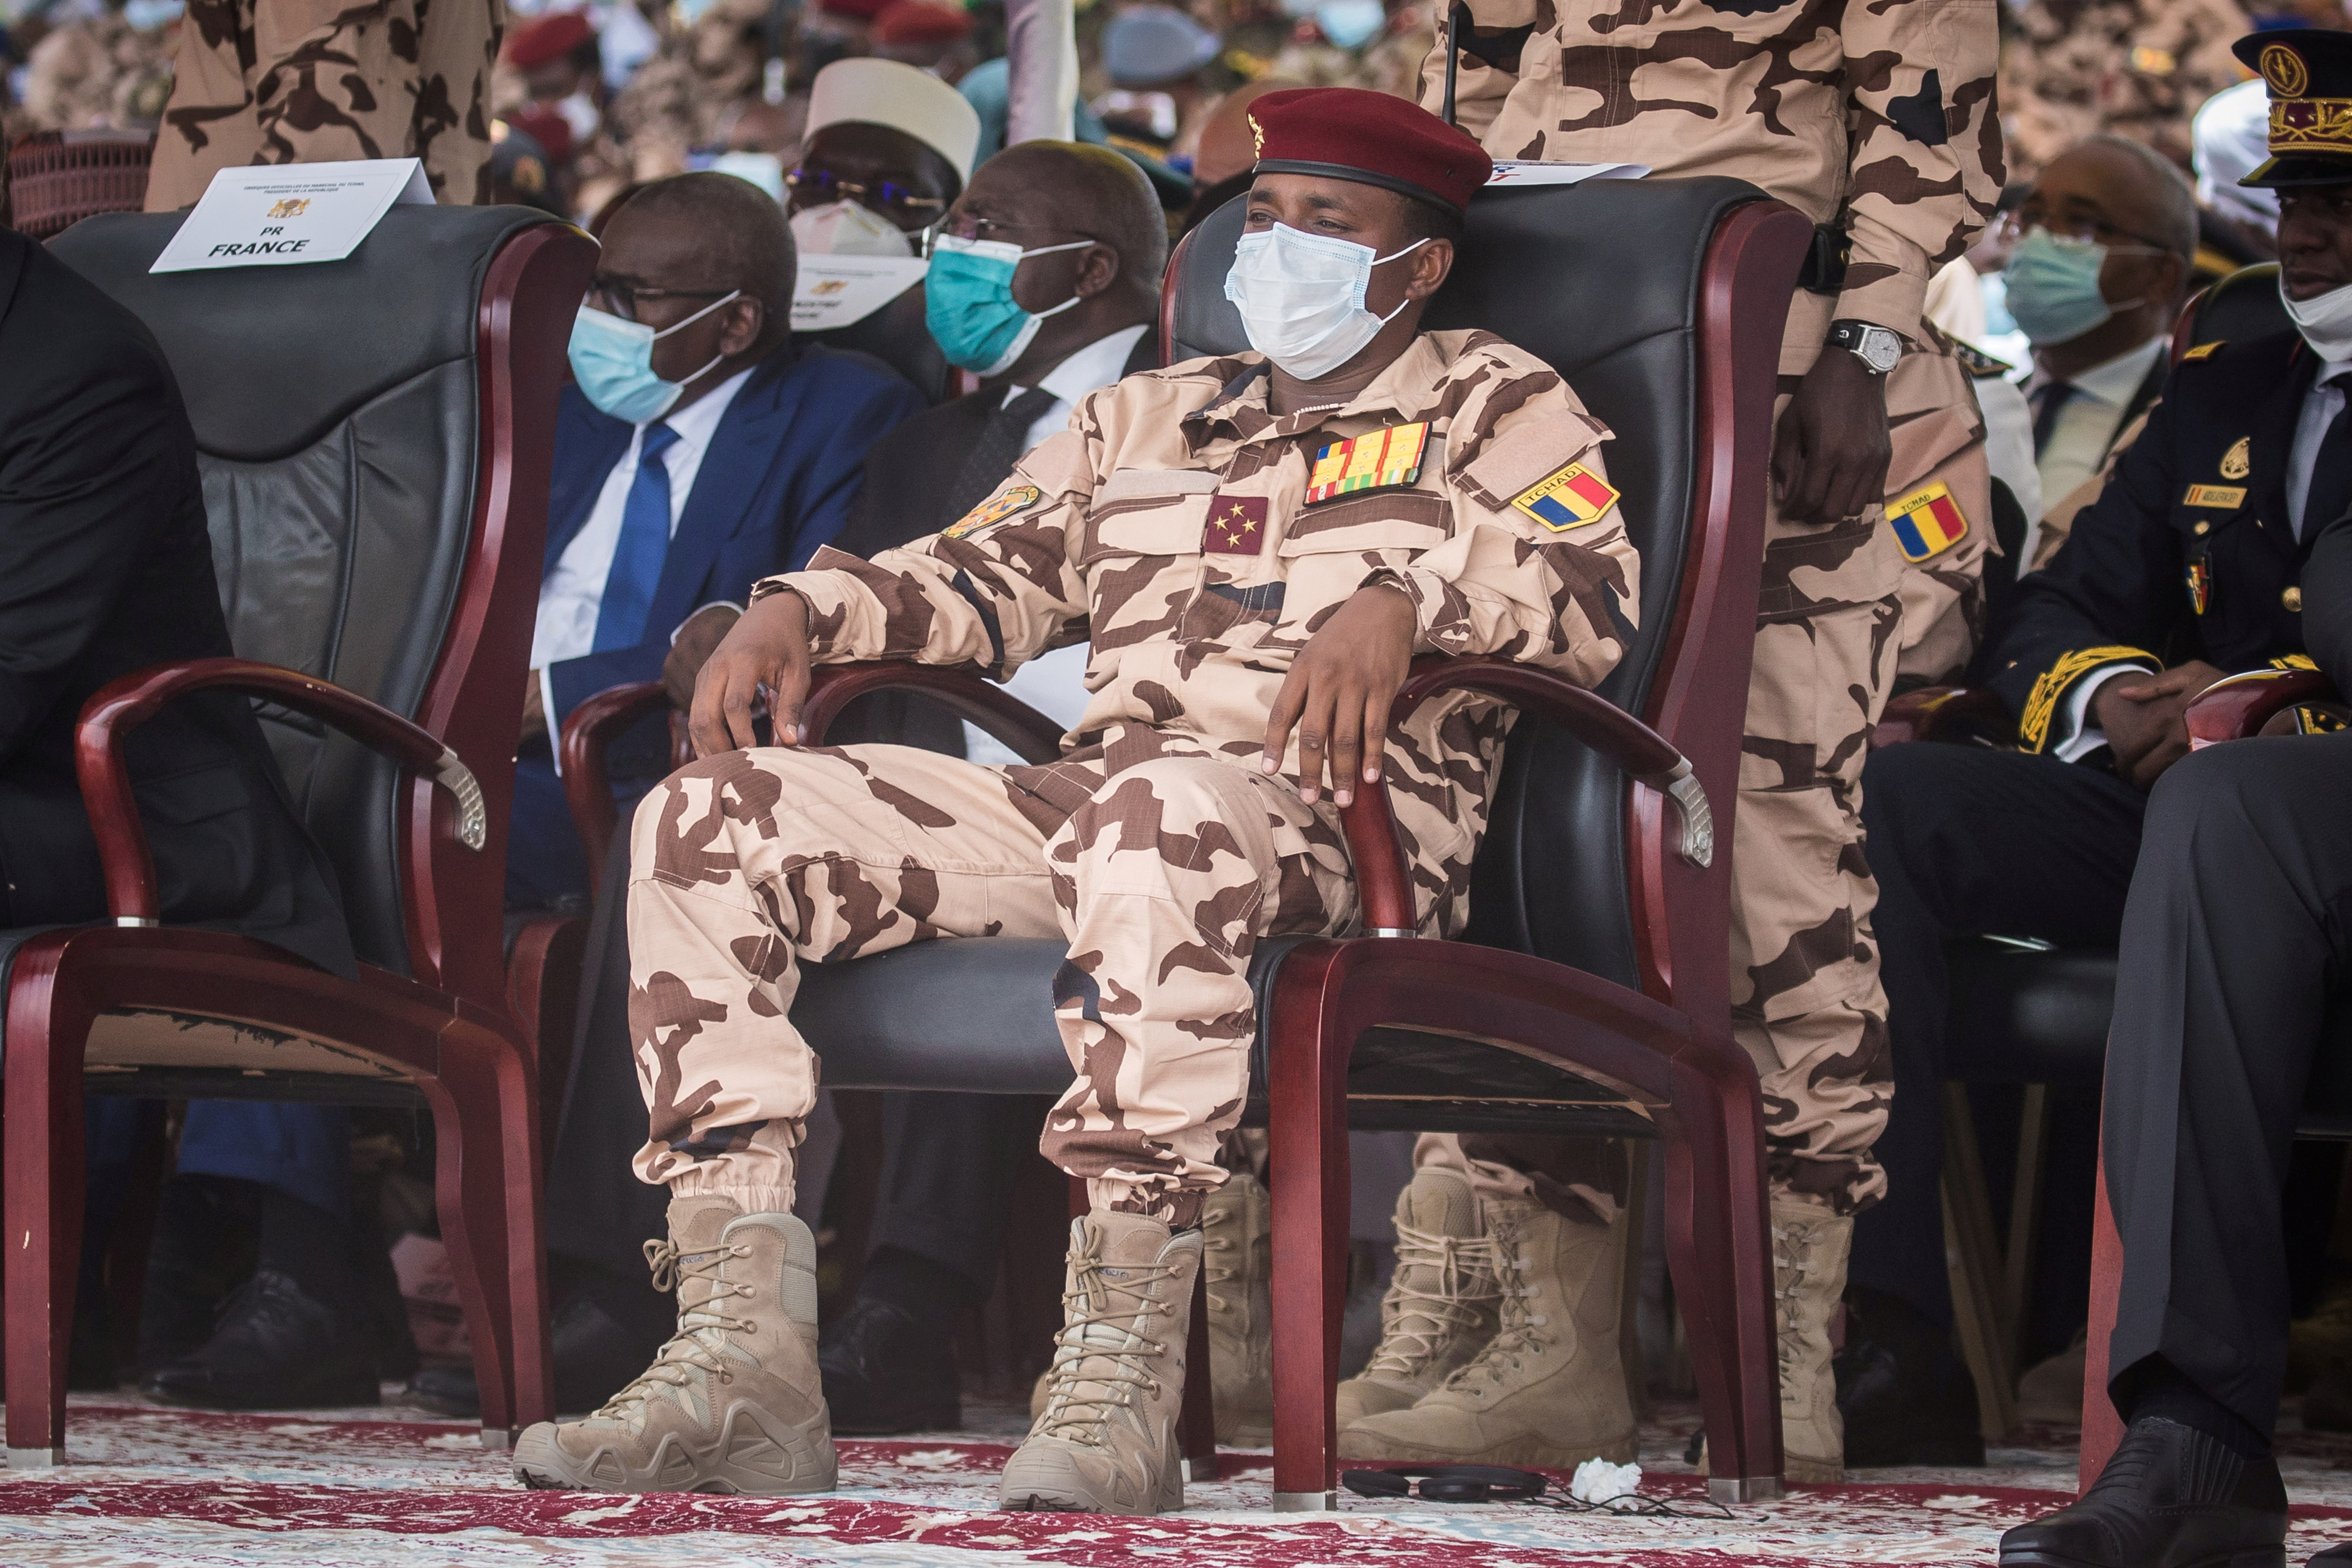 Mahamat Idriss Deby, son of late Chadian President Idriss Deby, attends his father's state funeral in N'Djamena, Chad, April 23, 2021. Christophe Petit Tesson/Pool via REUTERS/File Photo